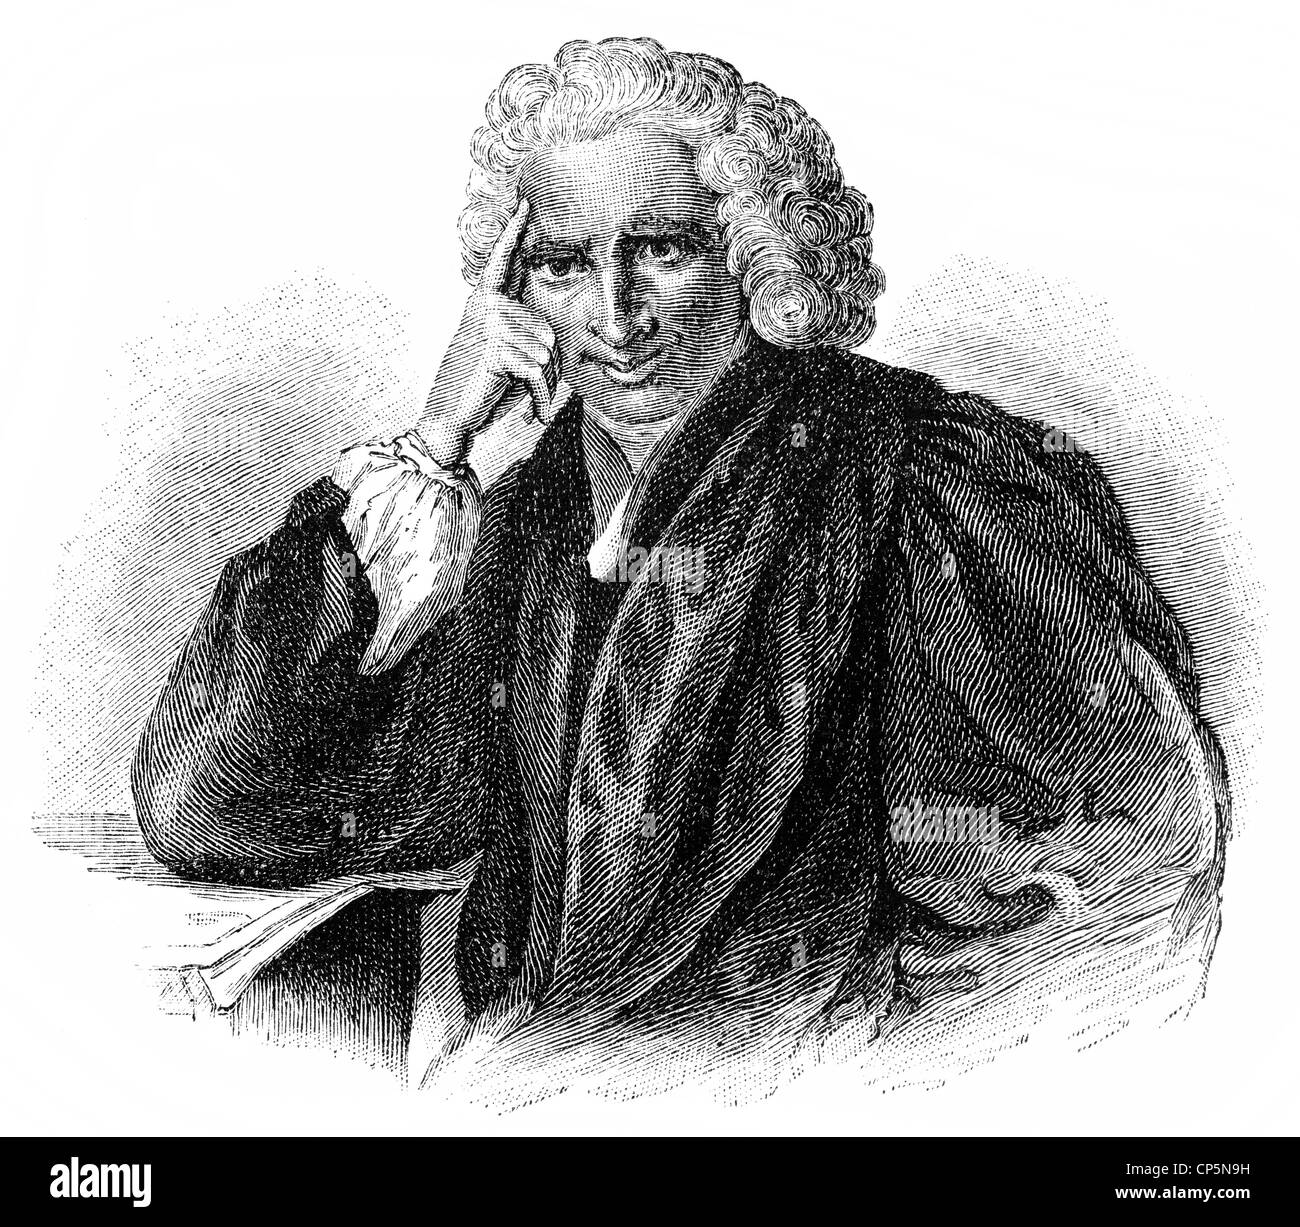 Laurence Sterne, 1713 - 1768, an English writer of the Enlightenment, - Stock Image